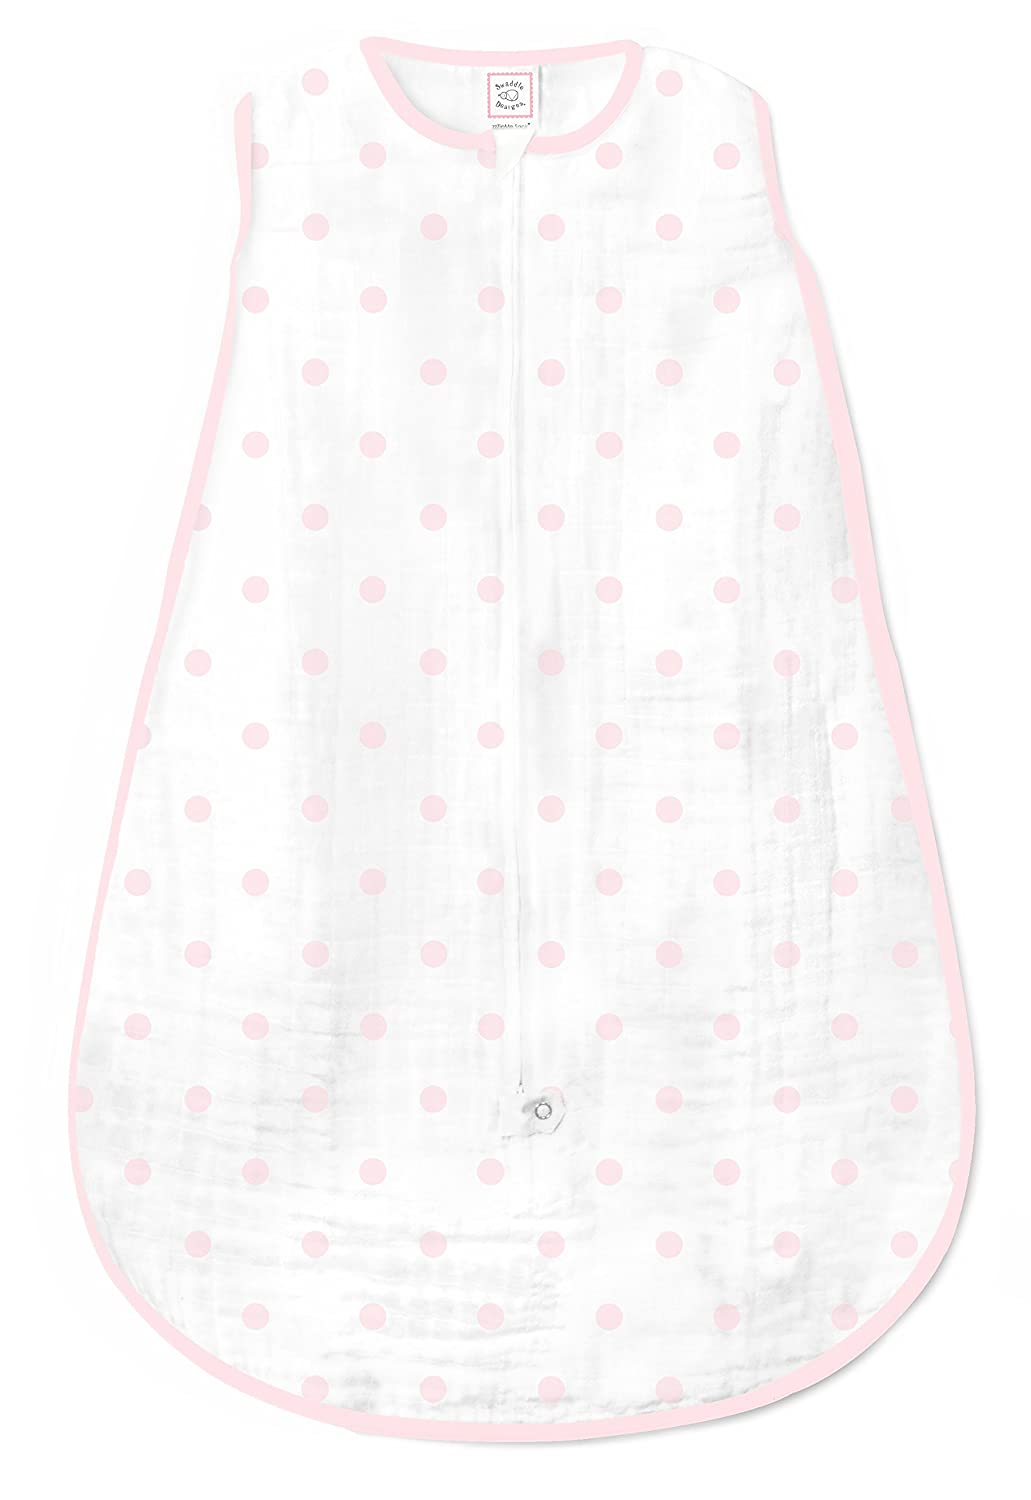 Pink Tiny Triangle Shimmer Small 0-6 Months SwaddleDesigns Cotton Sleeping Sack with 2-Way Zipper